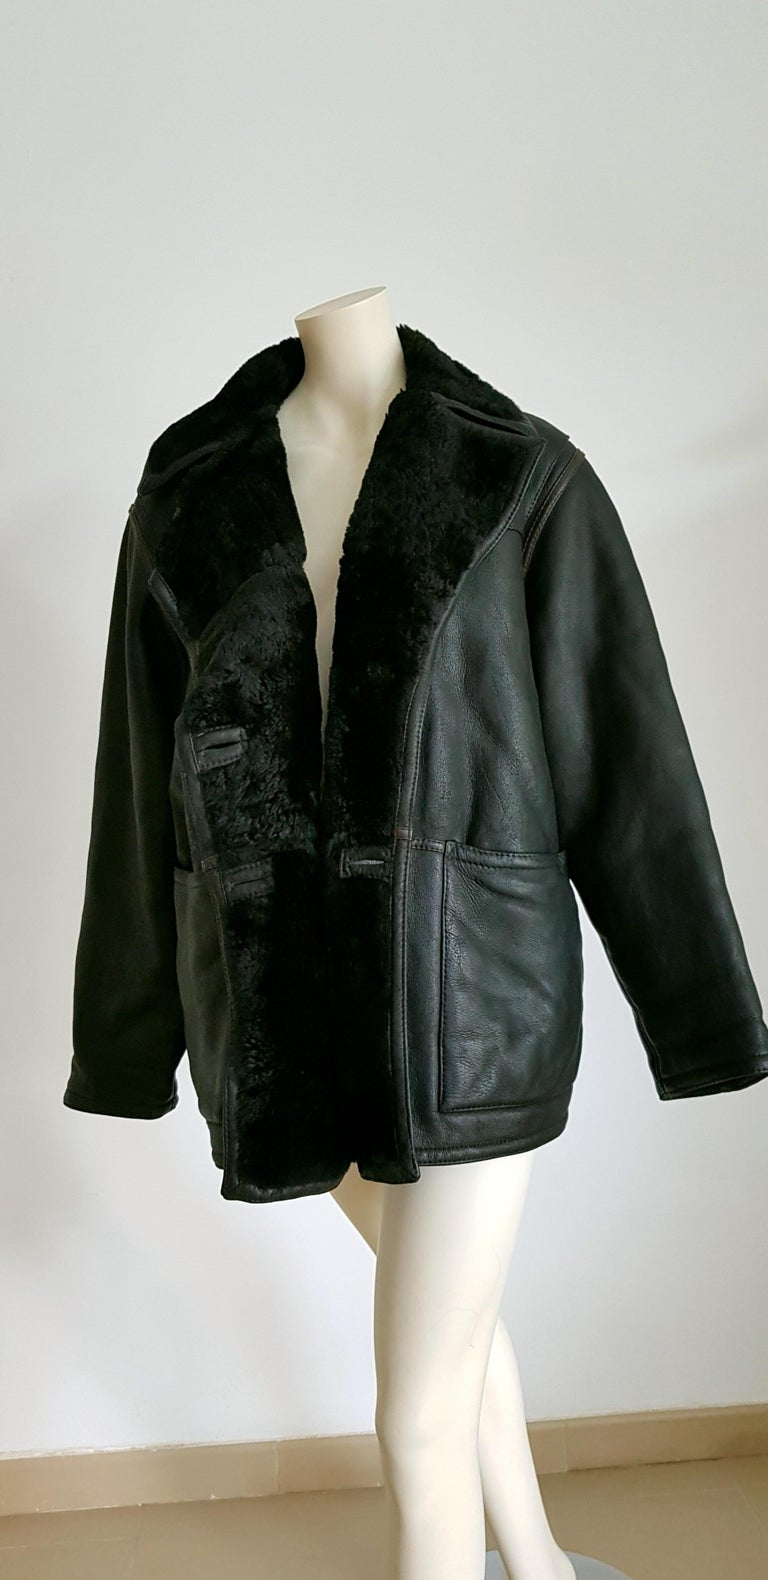 FENDI black leather with brown stitched stripes shearling collar jacket coat - Unworn, New  SIZE: equivalent to about Small / Medium, please review approx measurements as follows in cm: lenght 82, chest underarm to underarm 65, bust 120, shoulder